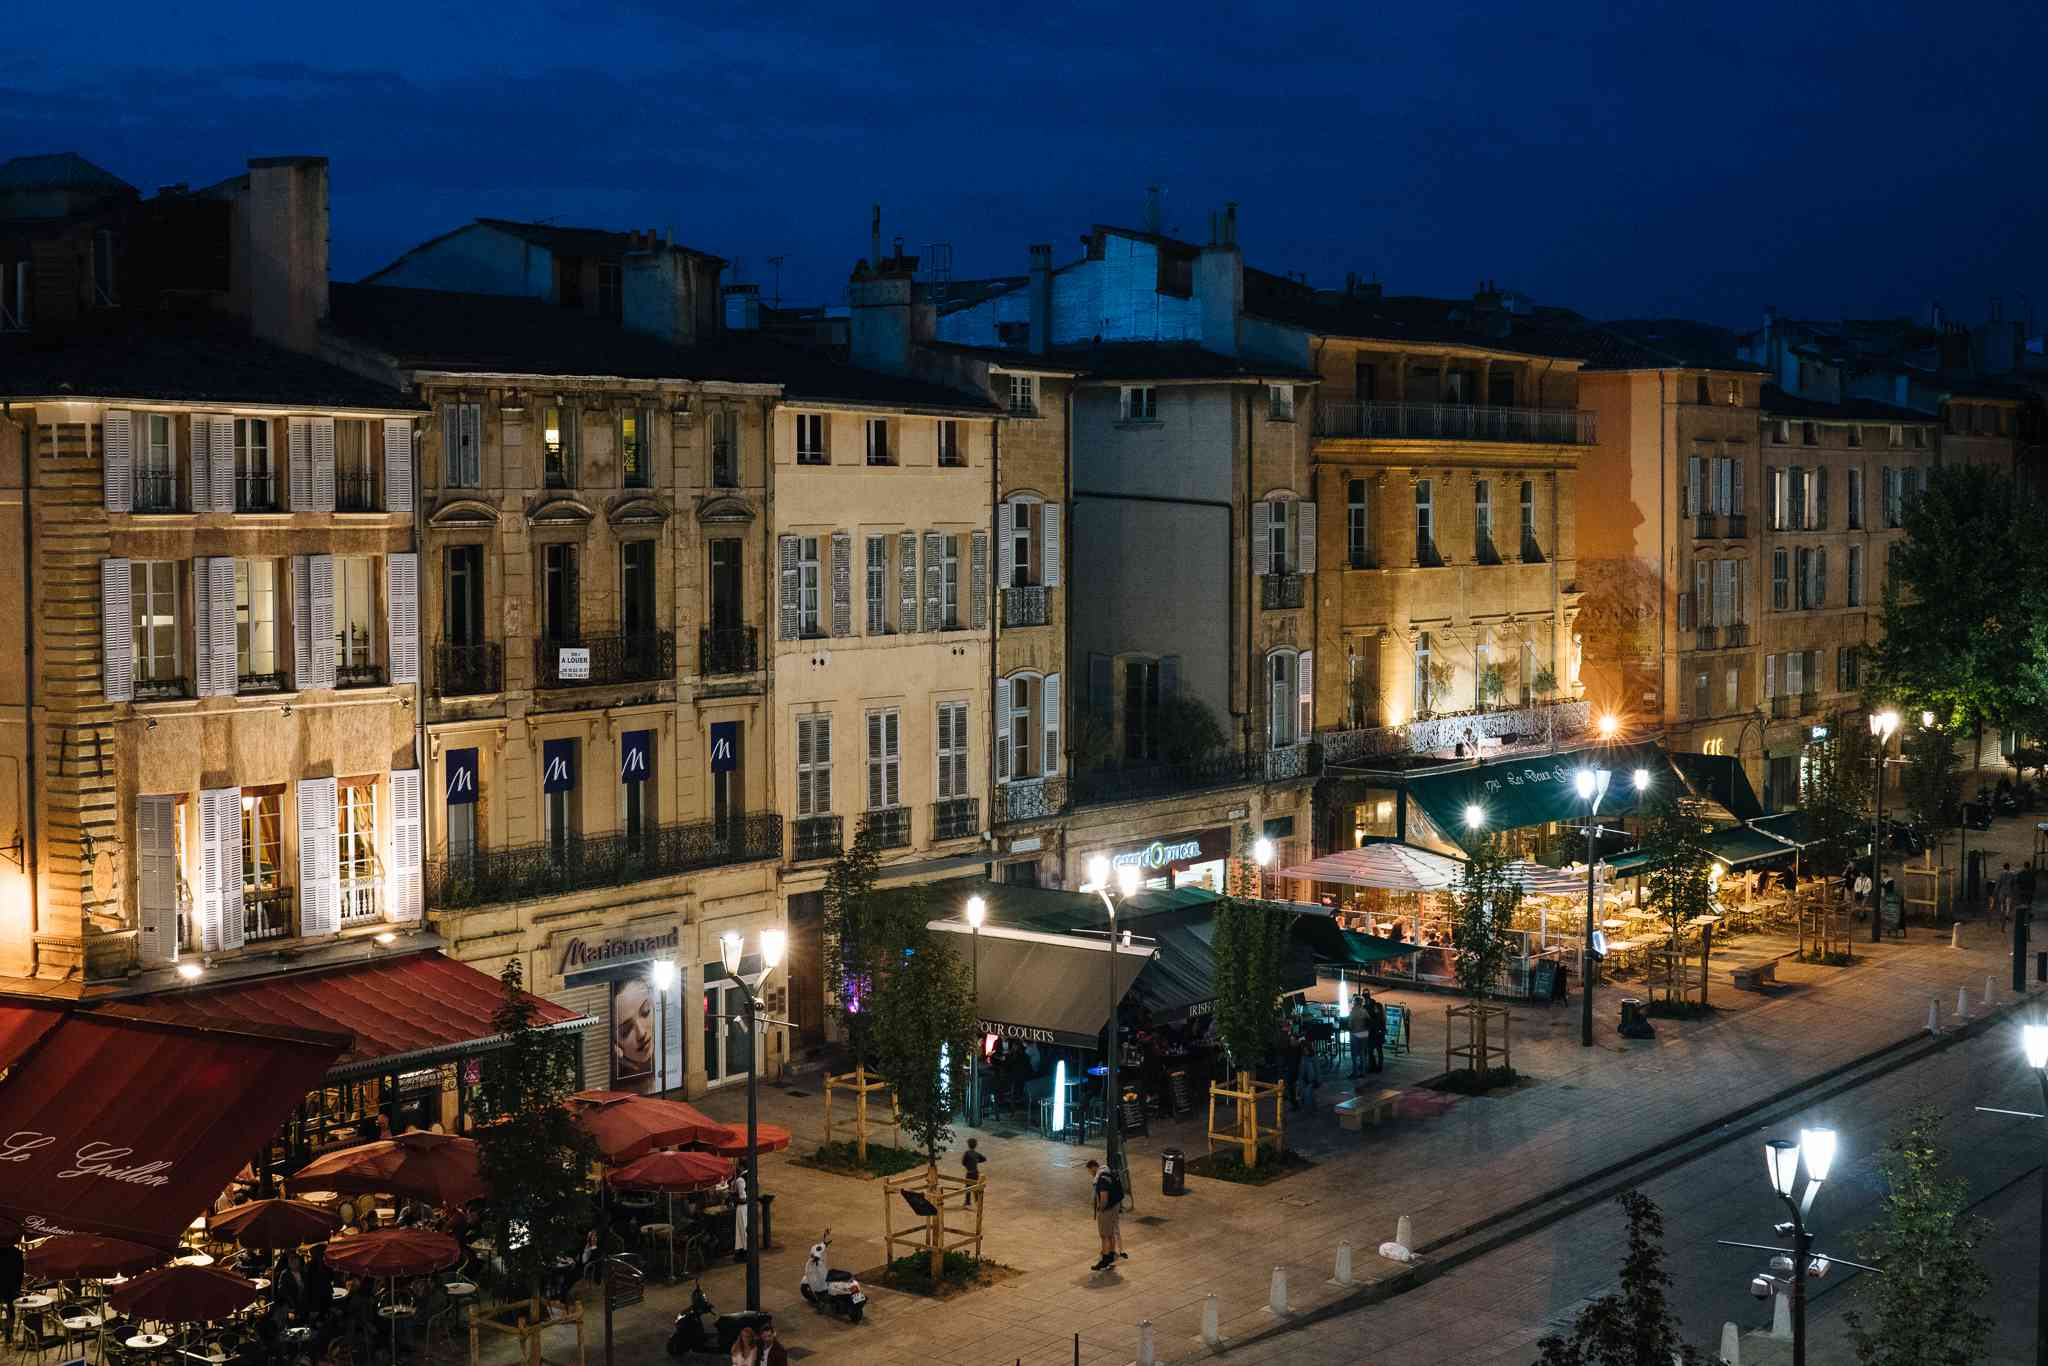 Old Town in Aix-en-Provence at night